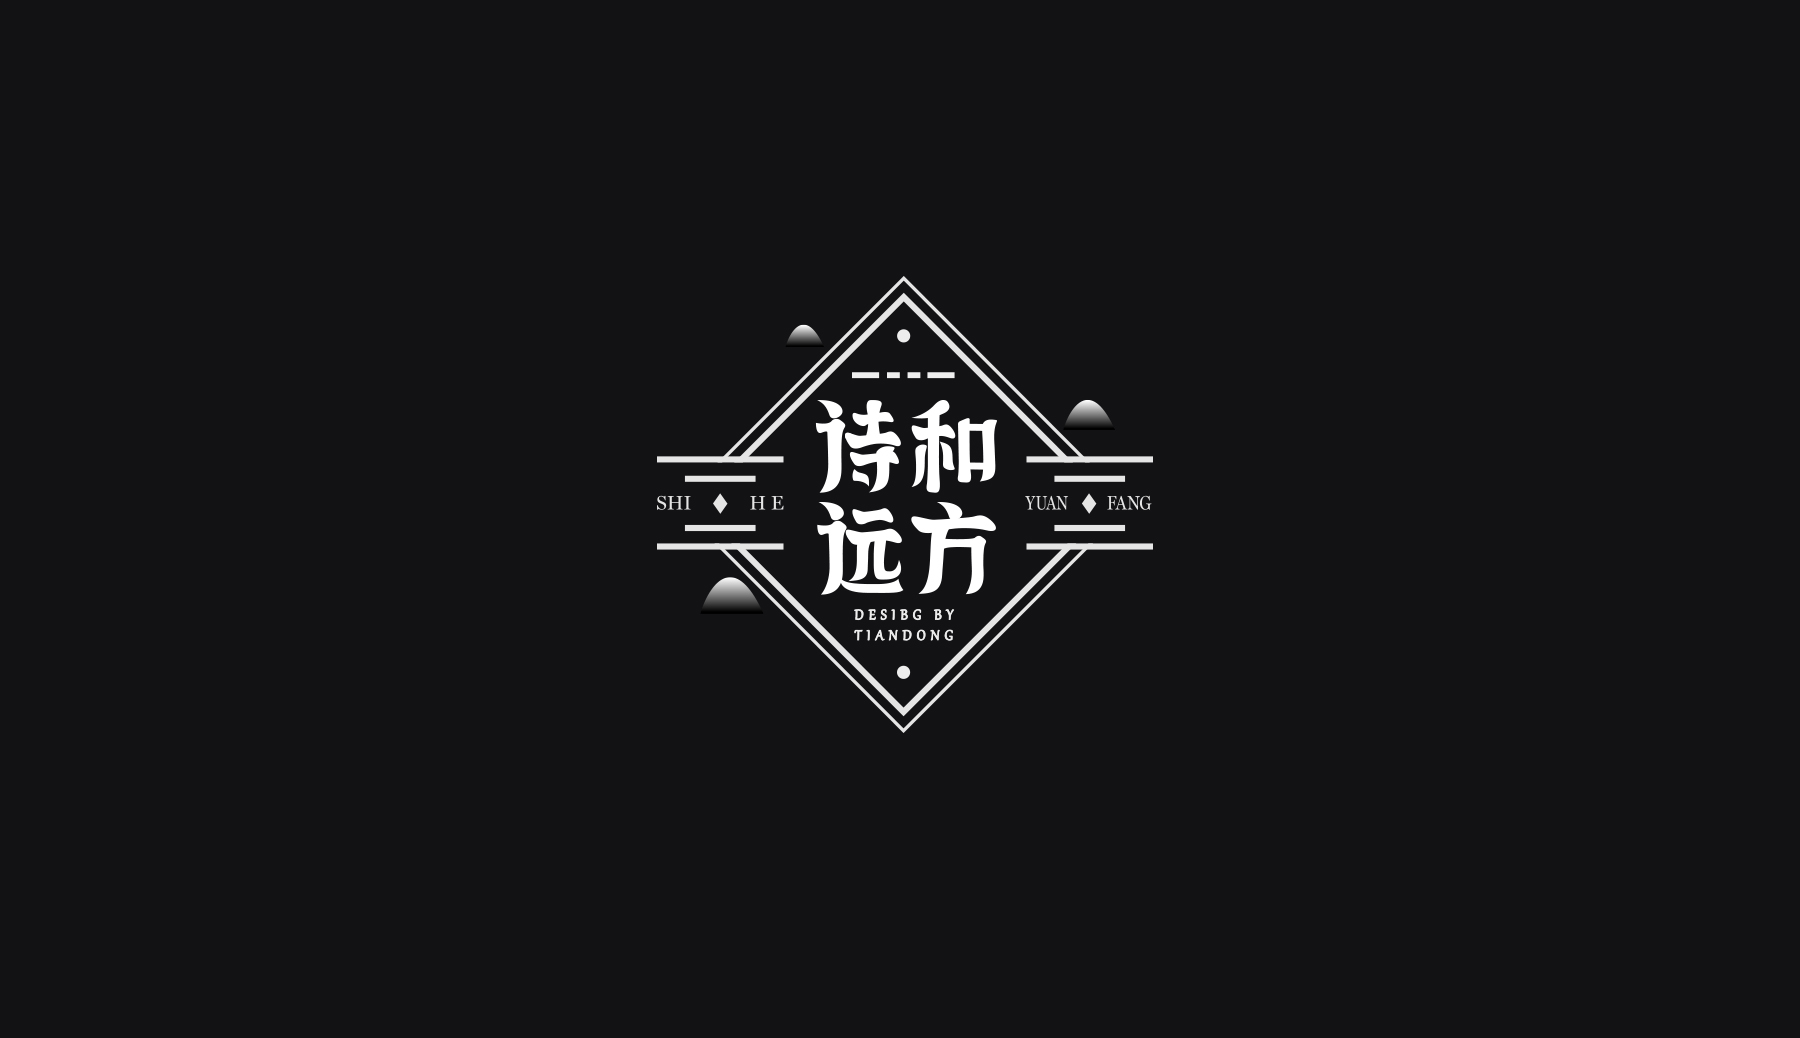 chinesefontdesign.com 2017 07 26 13 03 51 960236 18P Chinese font design   font in life